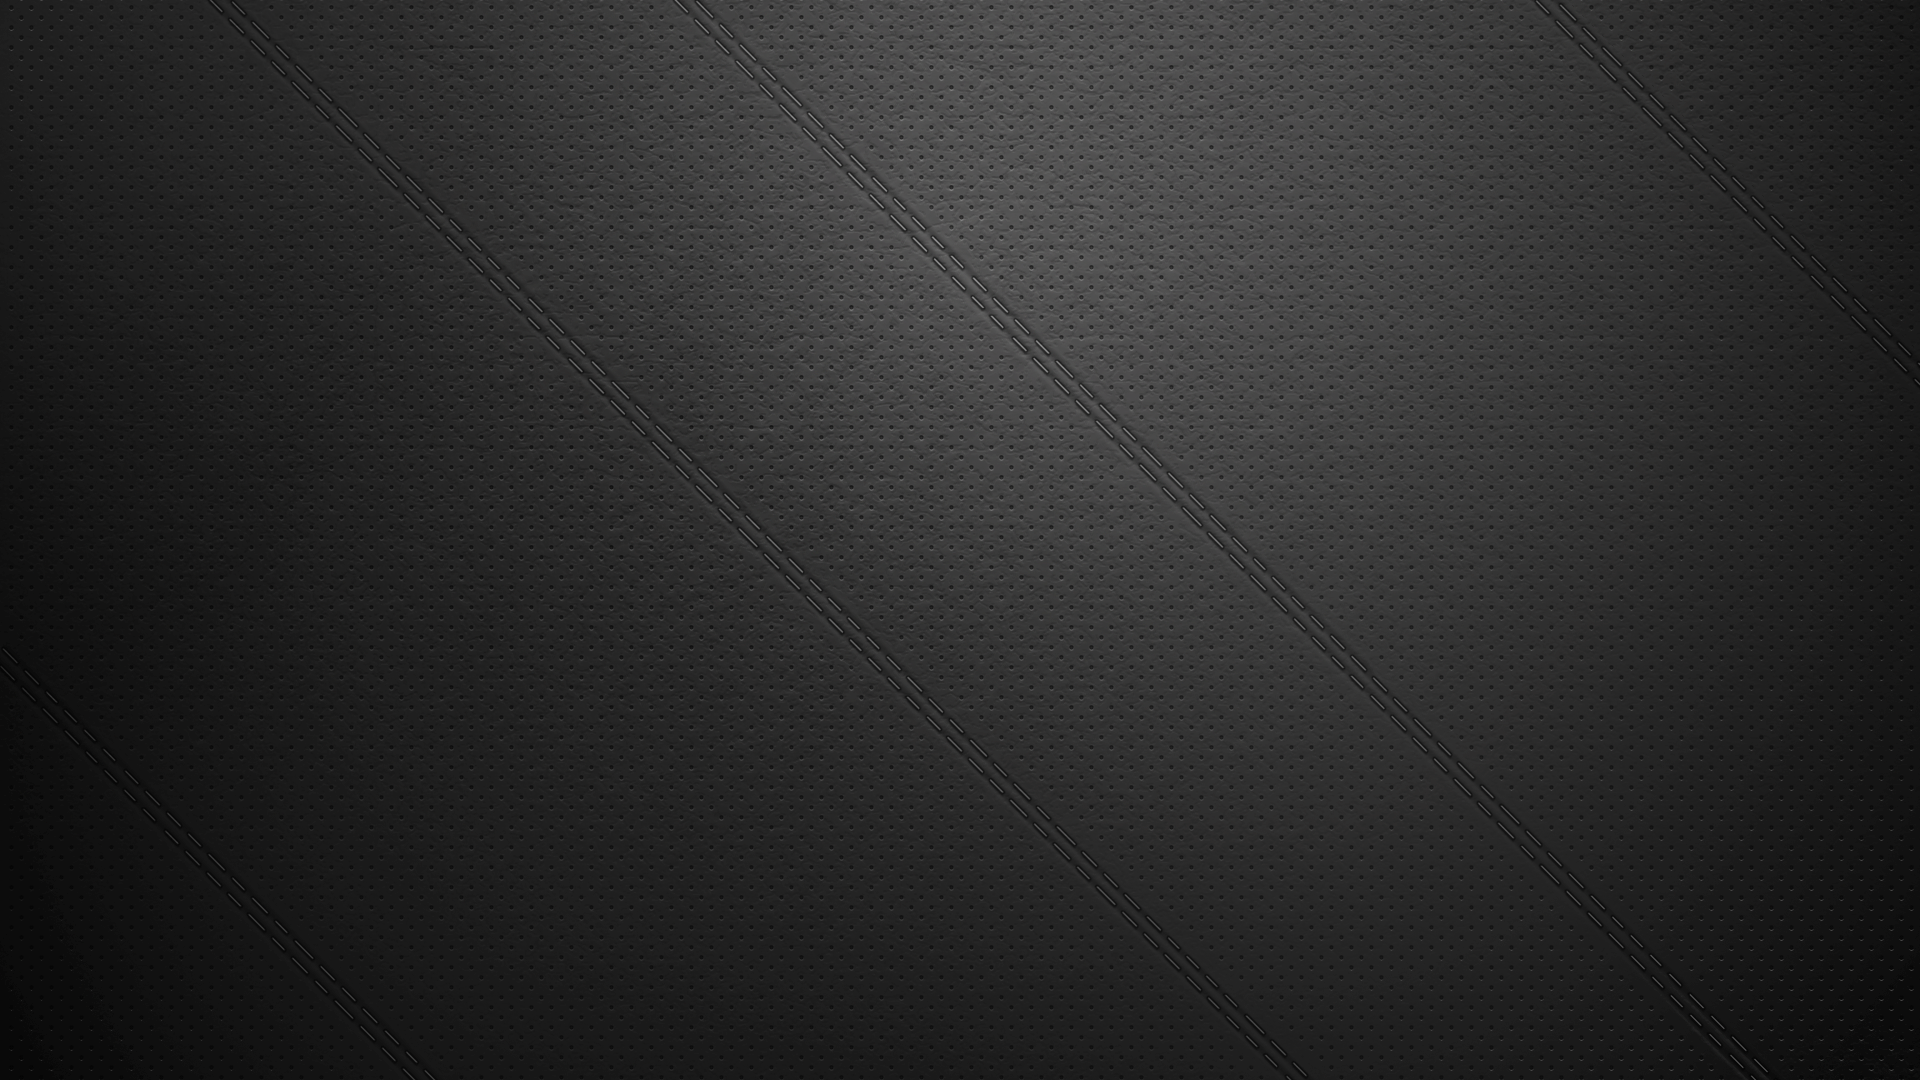 Hd Black Leather Hd Wallpaper Black Textures